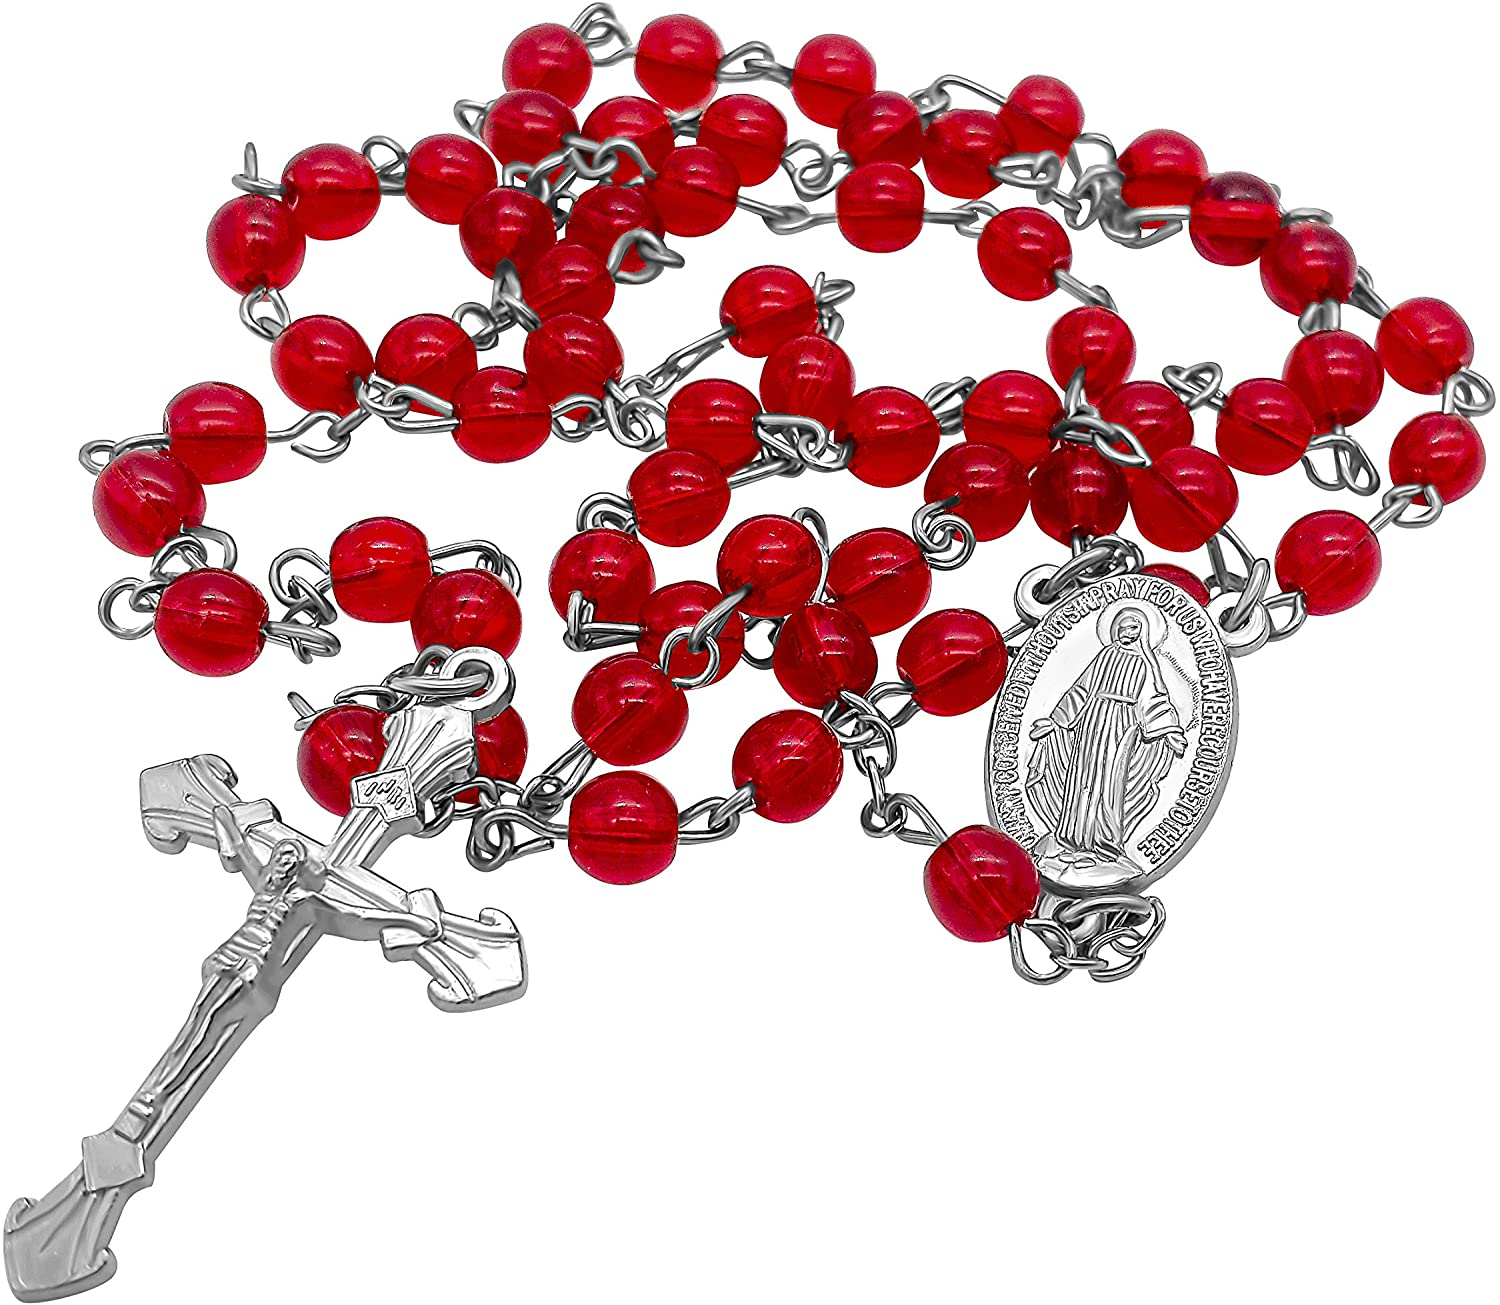 Nazareth Store Red Glass Beads Rosary Catholic Necklace Prayer Miraculous Medal Cross Holy Land Religious Gifts for Women and Men